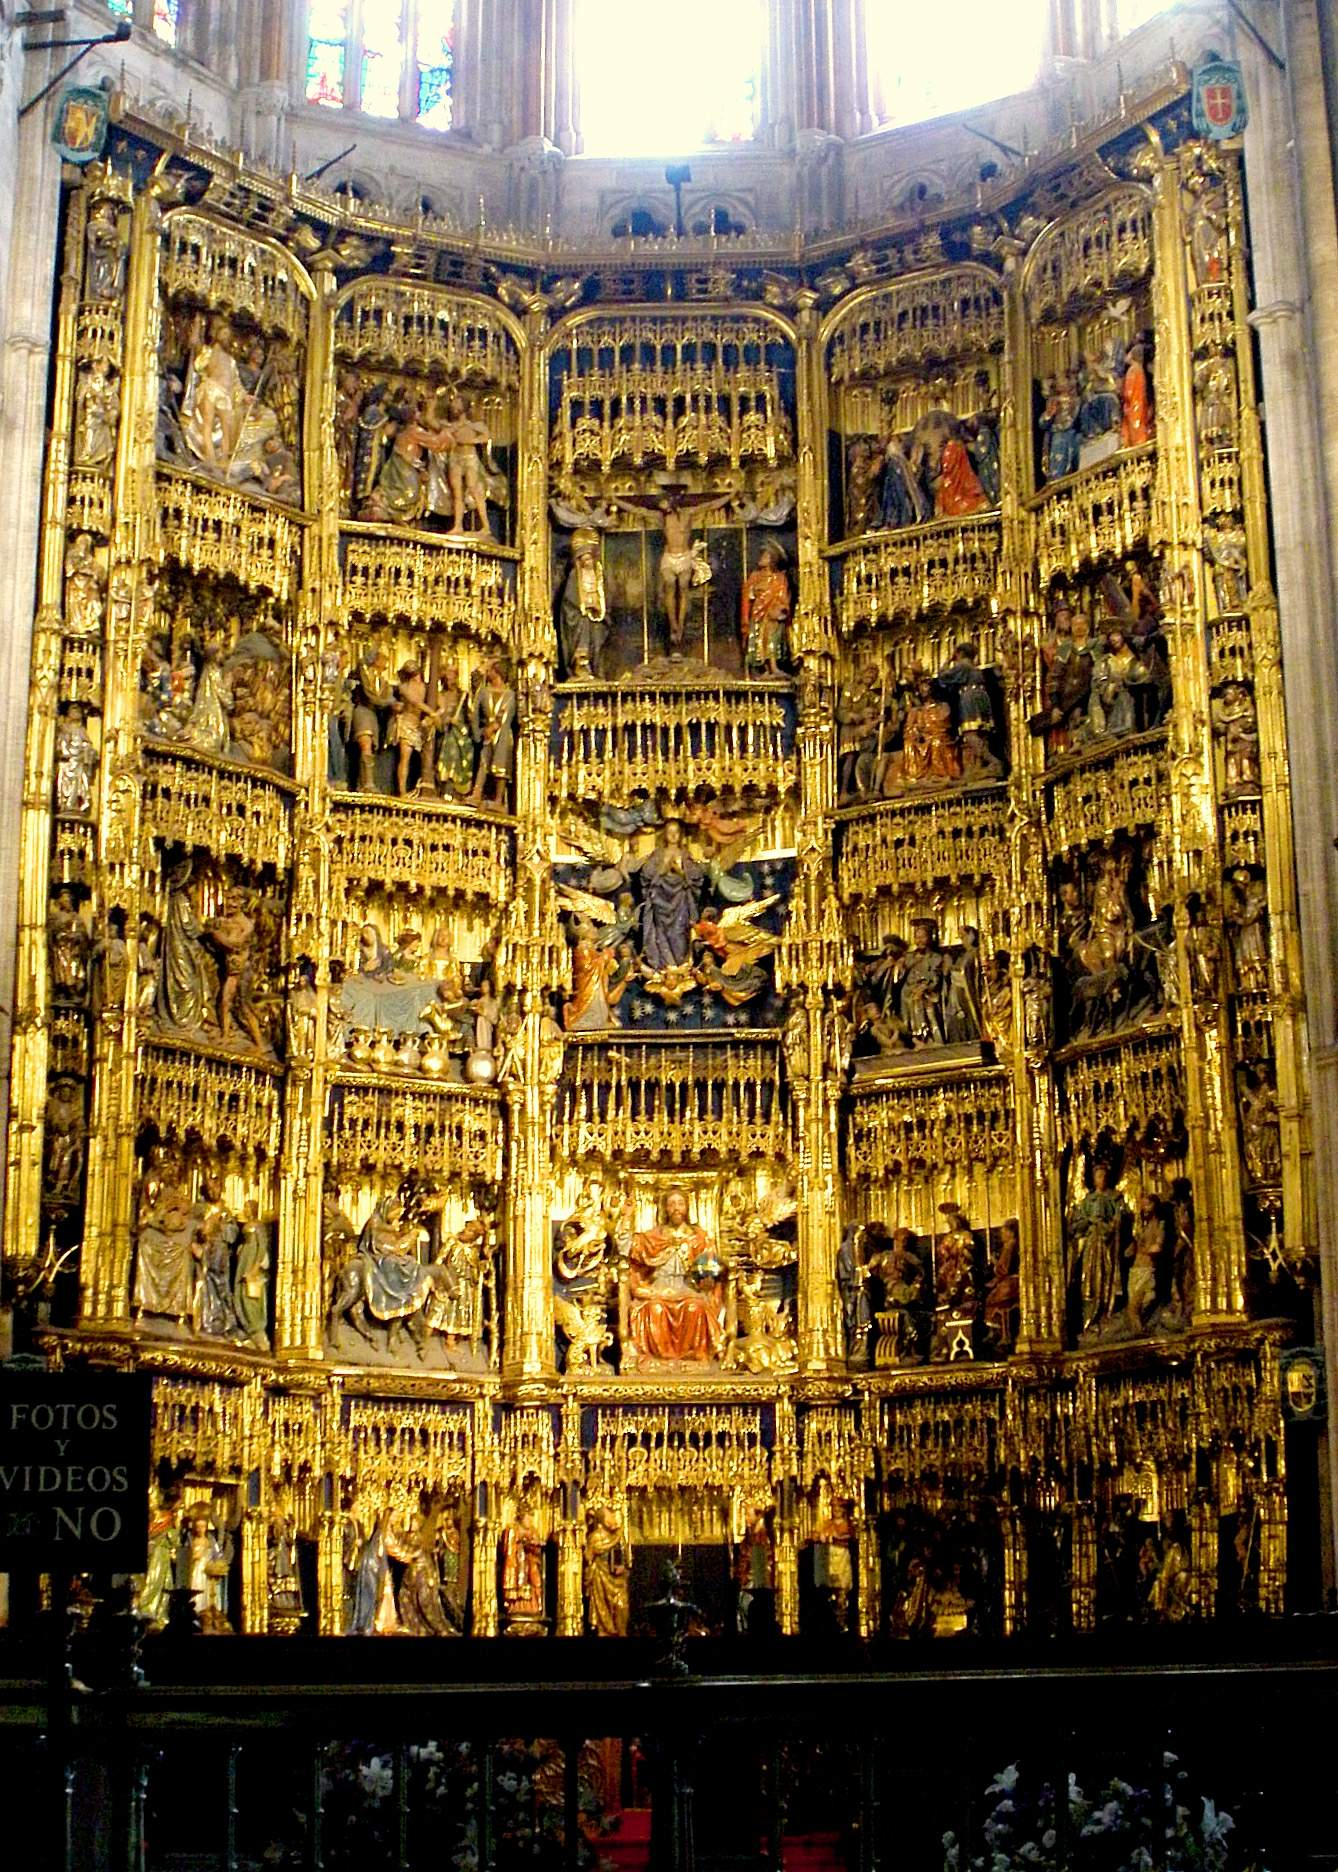 Retablo mayor de la Catedral de Oviedo